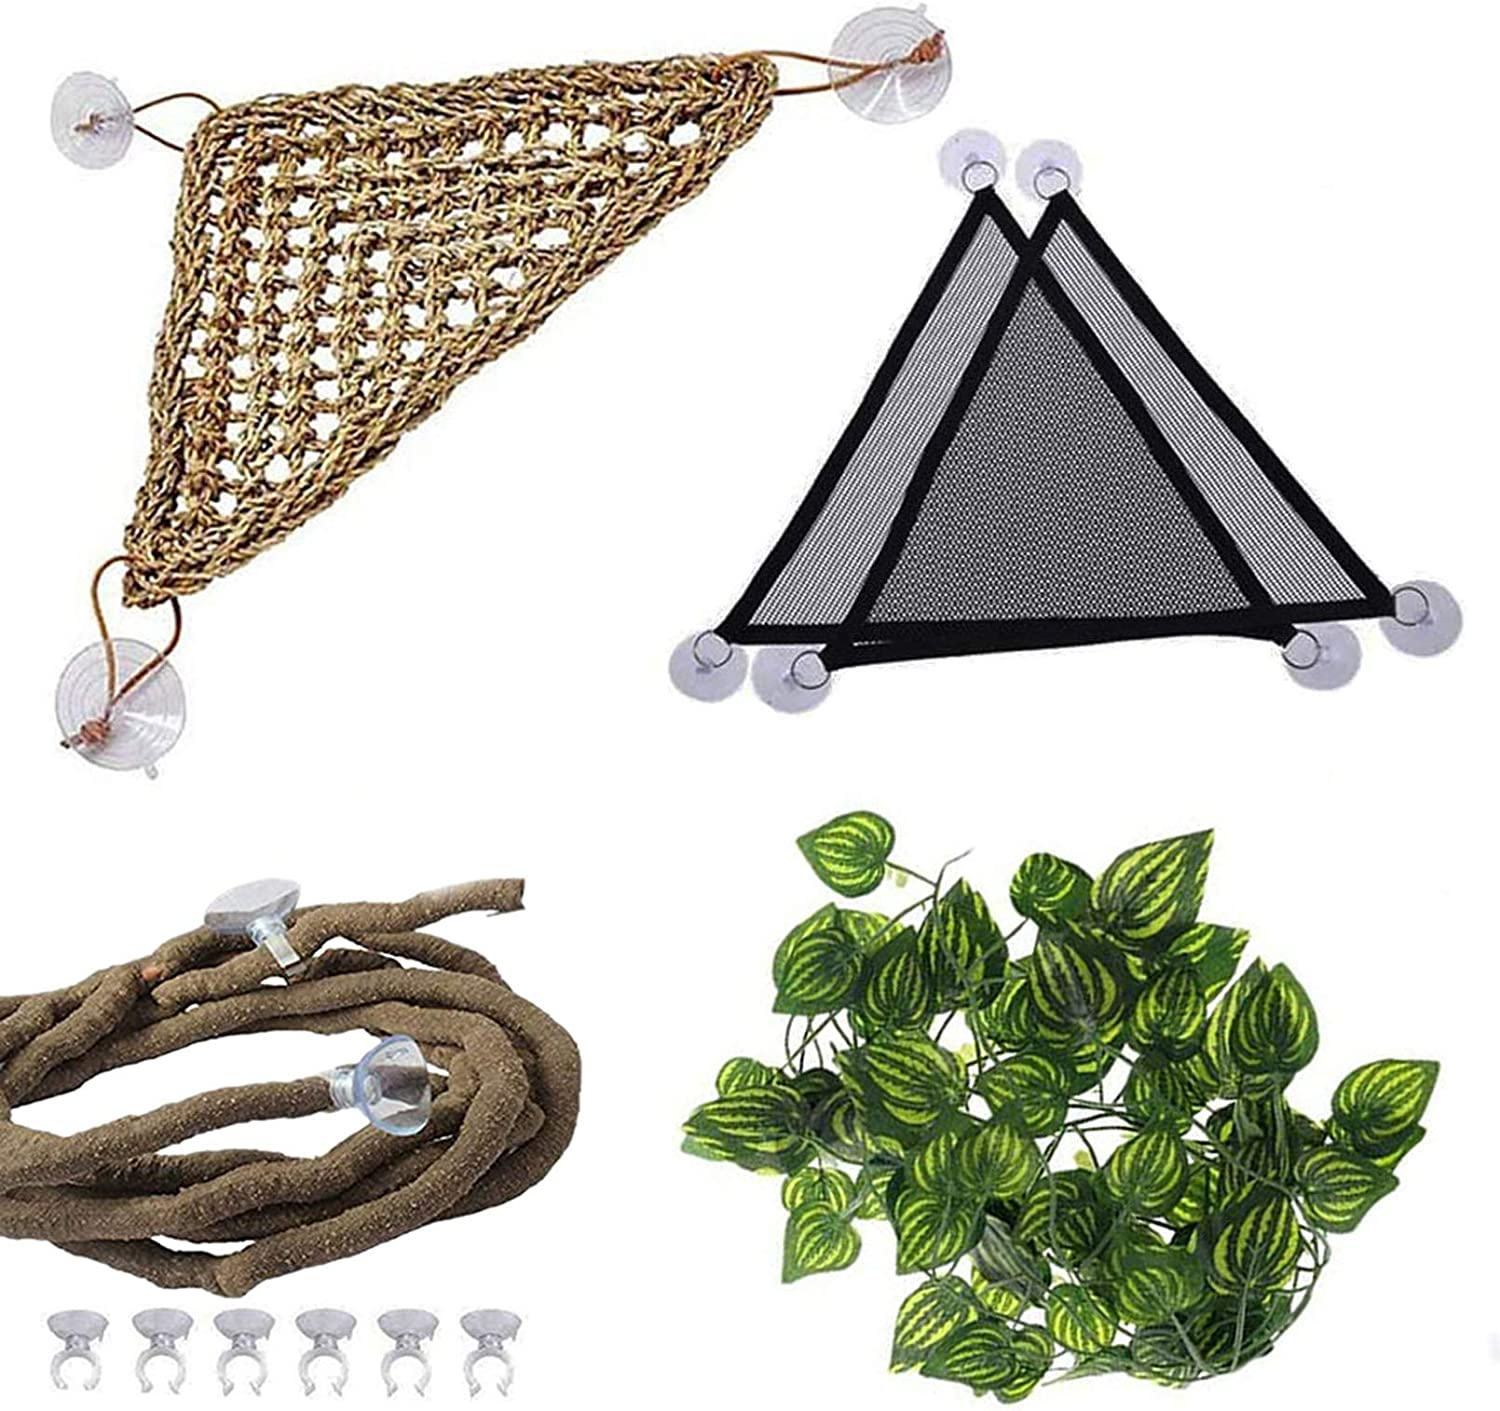 PINVNBY Bearded Dragon Tank Accessories,Reptile Habitat Hammock,Lizard Lounger Climbing Decor,Natural Seagrass Fibers Jungle Bendable Vines Leaves for Chameleon Hermit Crabs Gecko or Snakes(4Pcs)